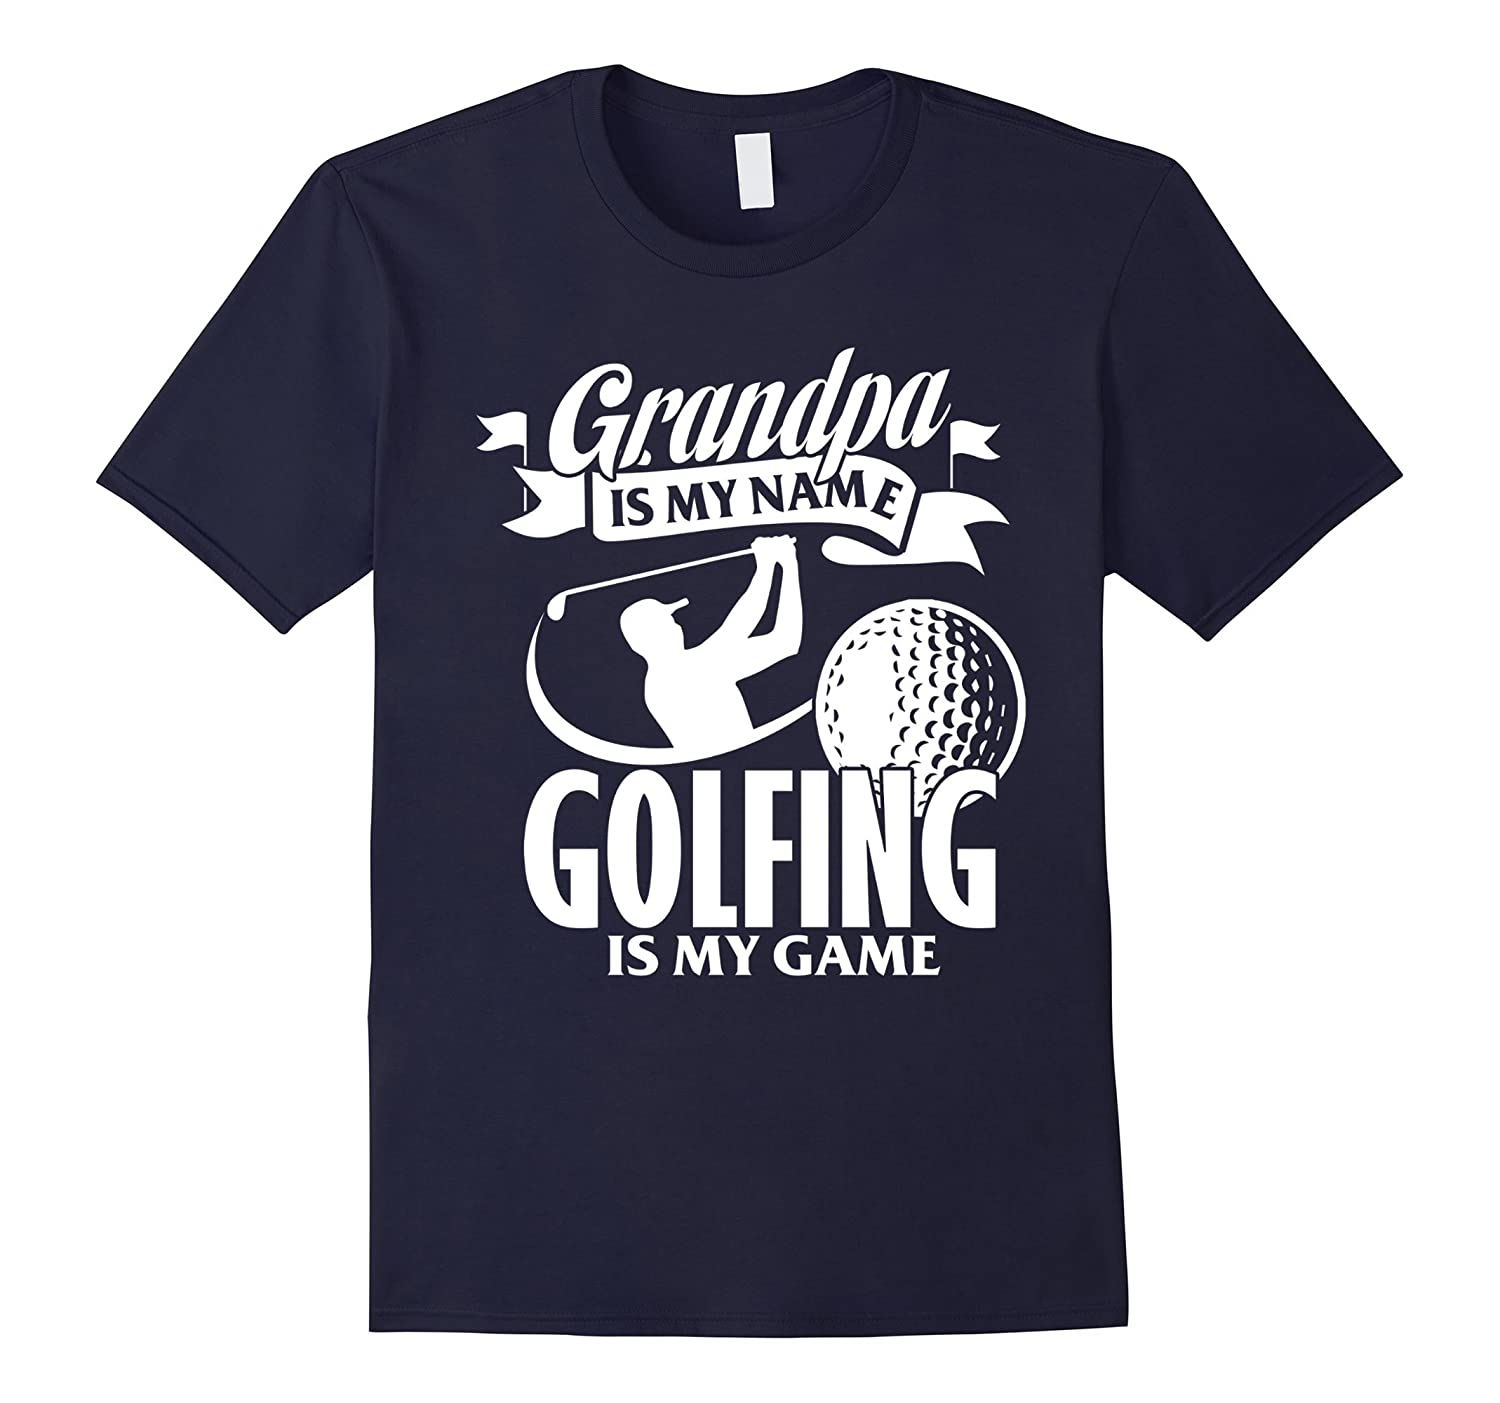 Funny T-Shirt For Grandpa Who Loves Golf Meaning Gift-Vaci